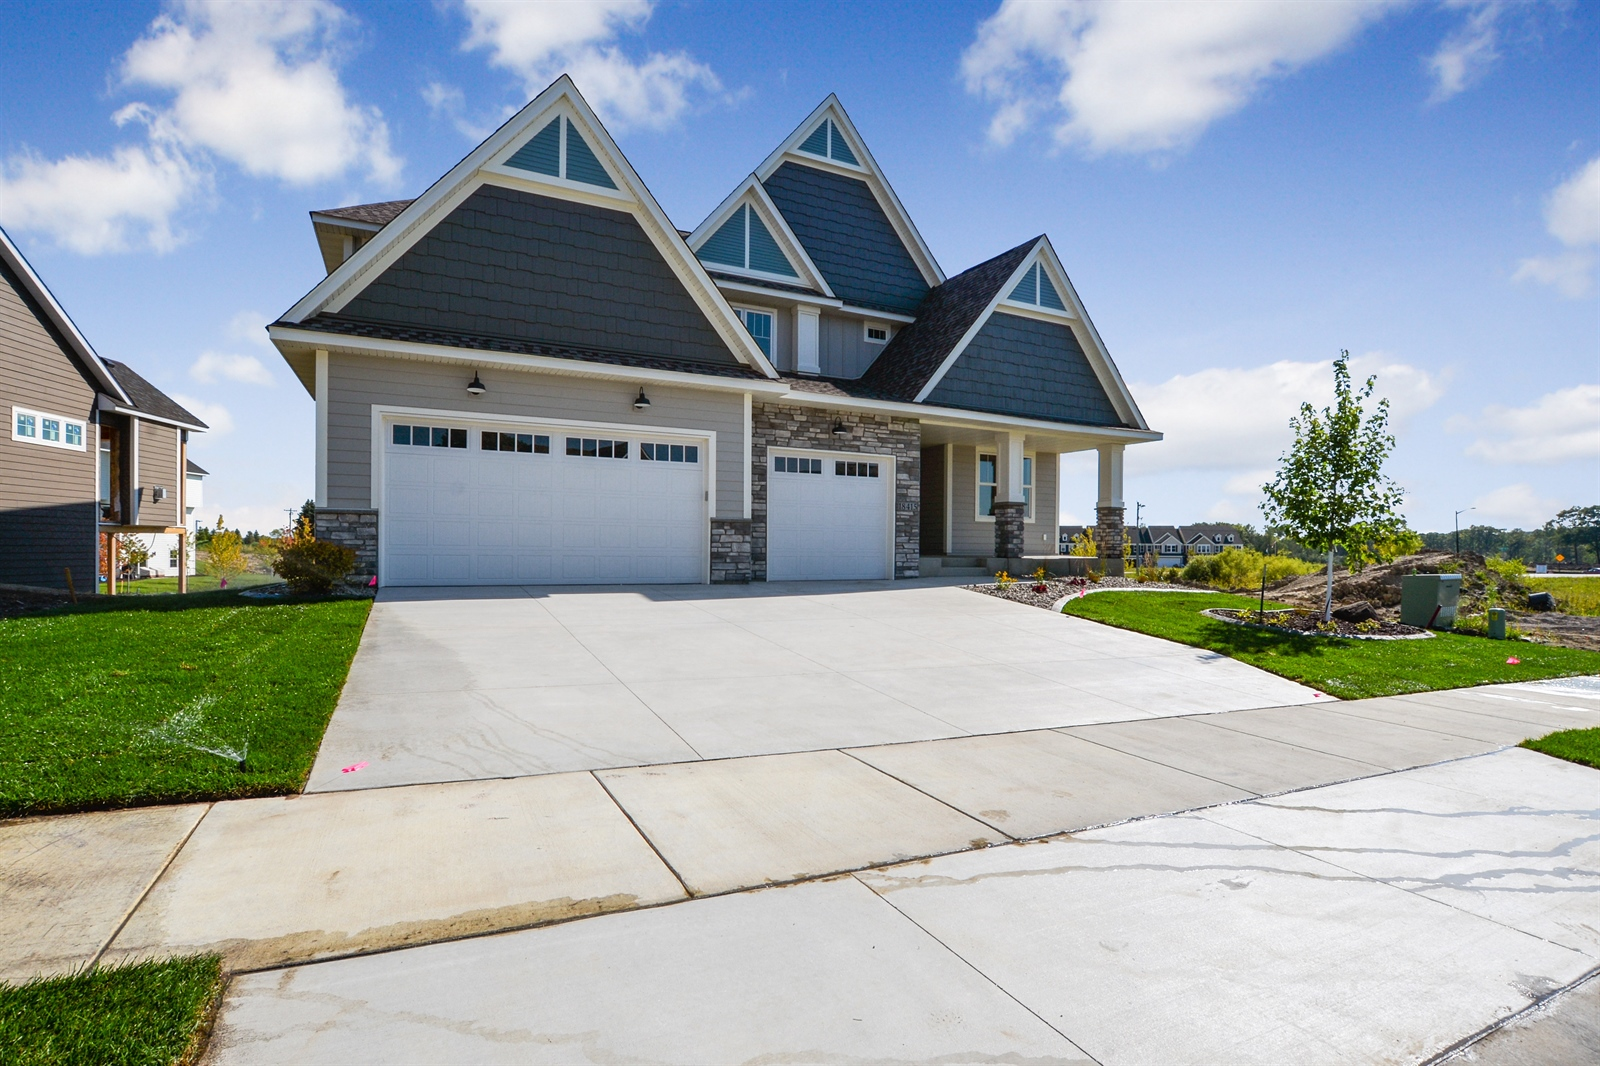 18415 61st Ave N Plymouth Mn 55447 Virtual Tour Price Custom Homes